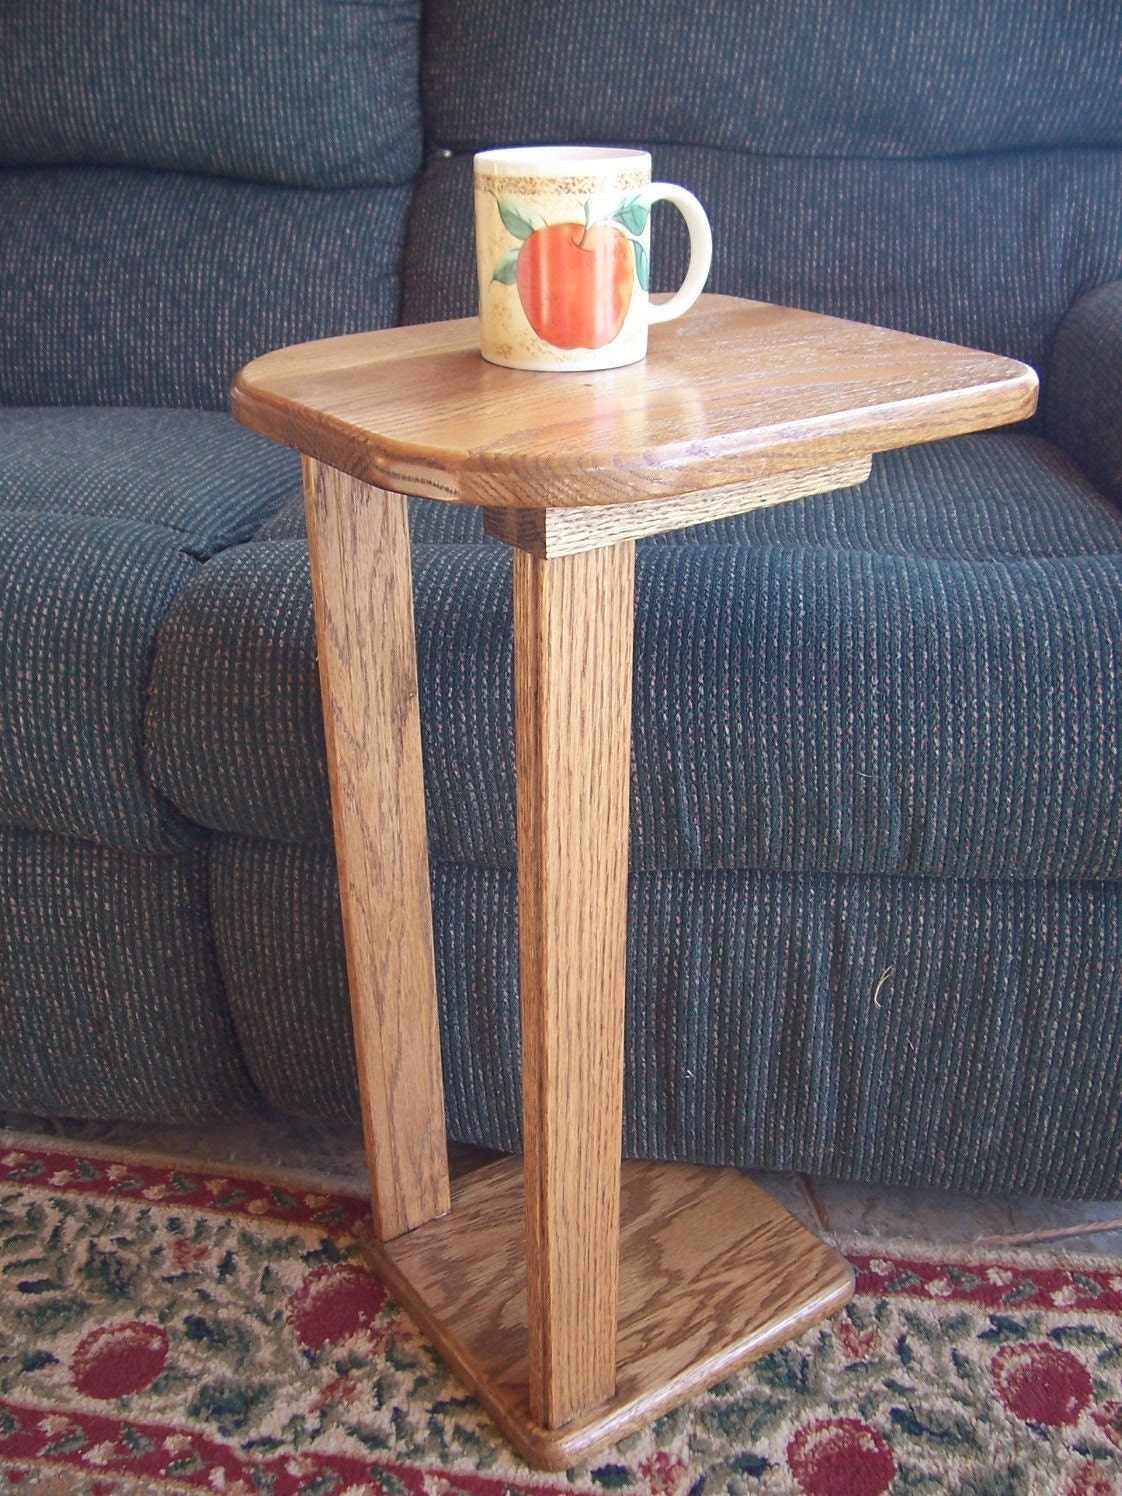 New Solid Oak Wood Snack Sofa Accent Table by woodupnorth on Etsy